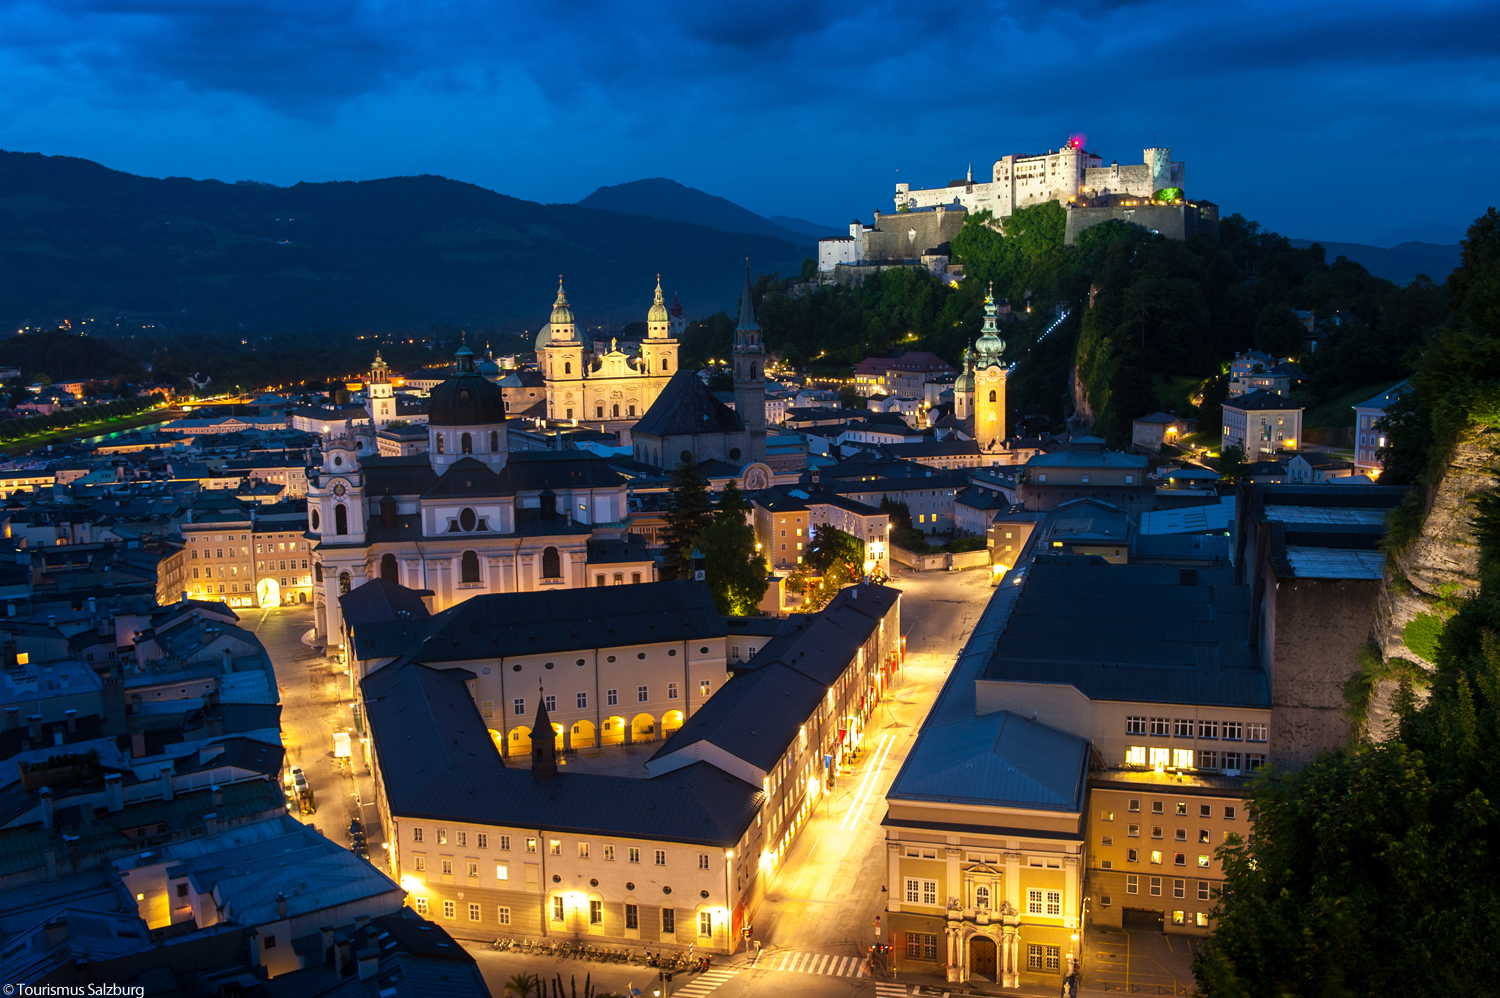 The history of the city of salzburg in a summary